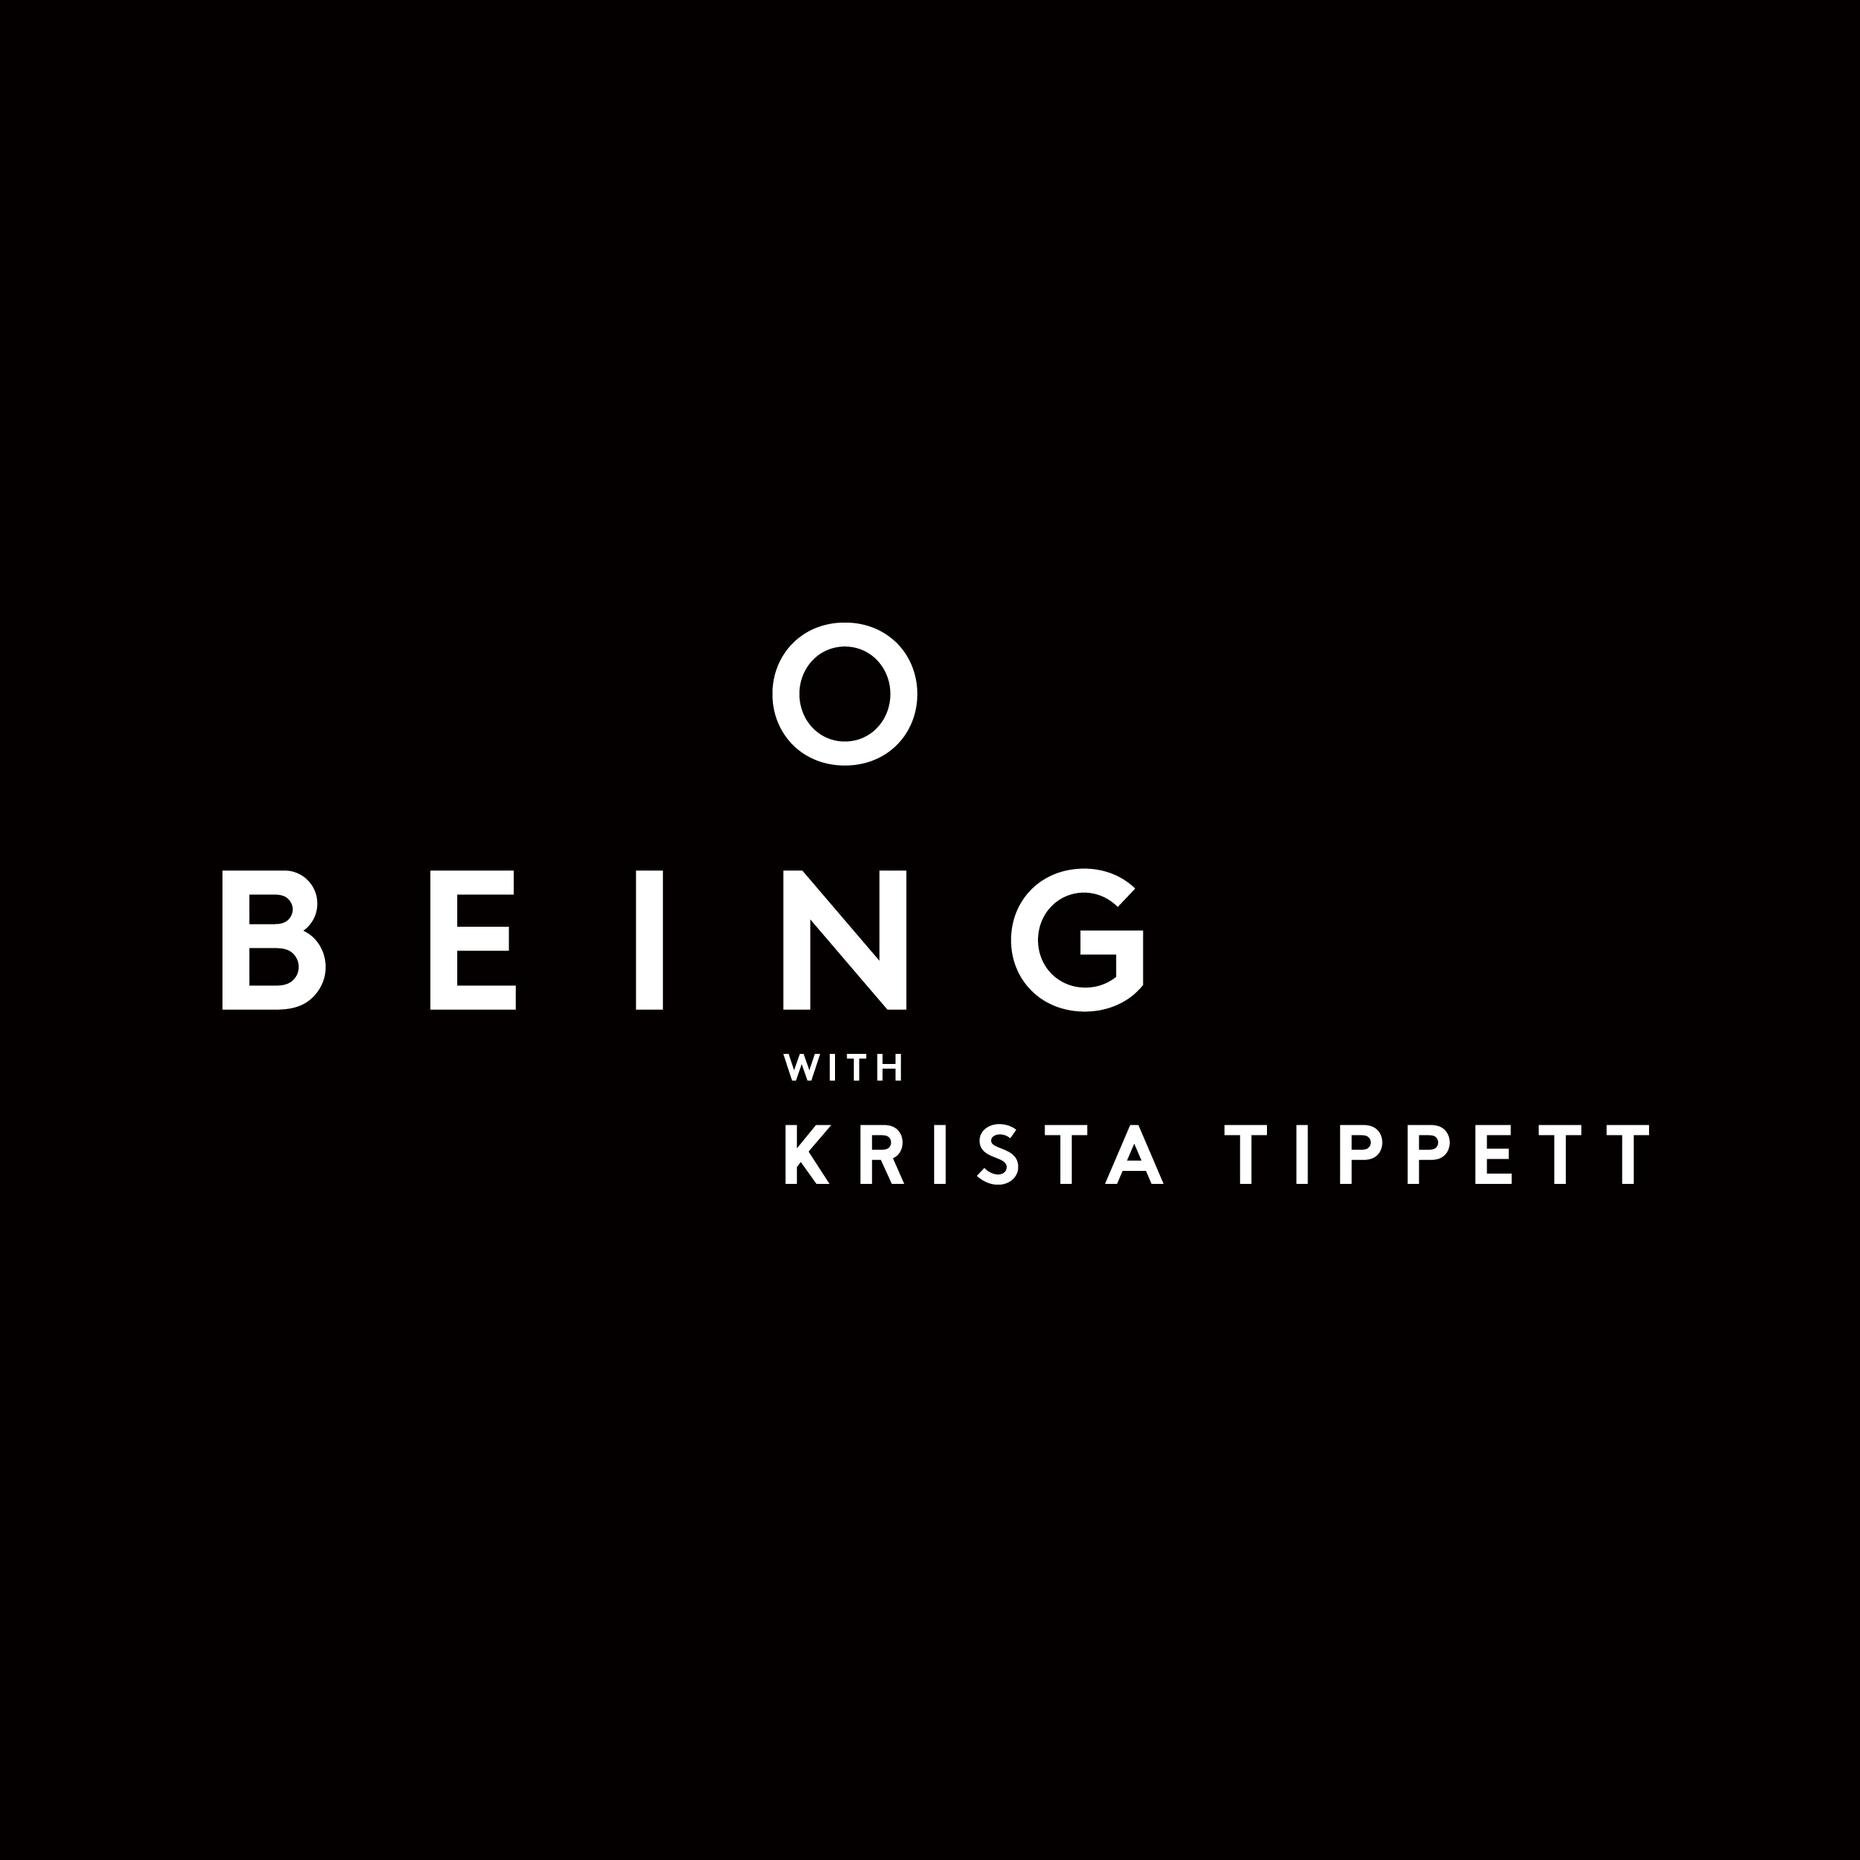 On Being-Krista Tippet - Groundbreaking Peabody Award-winning conversation about the big questions of meaning — spiritual inquiry, science, social healing, and the arts.